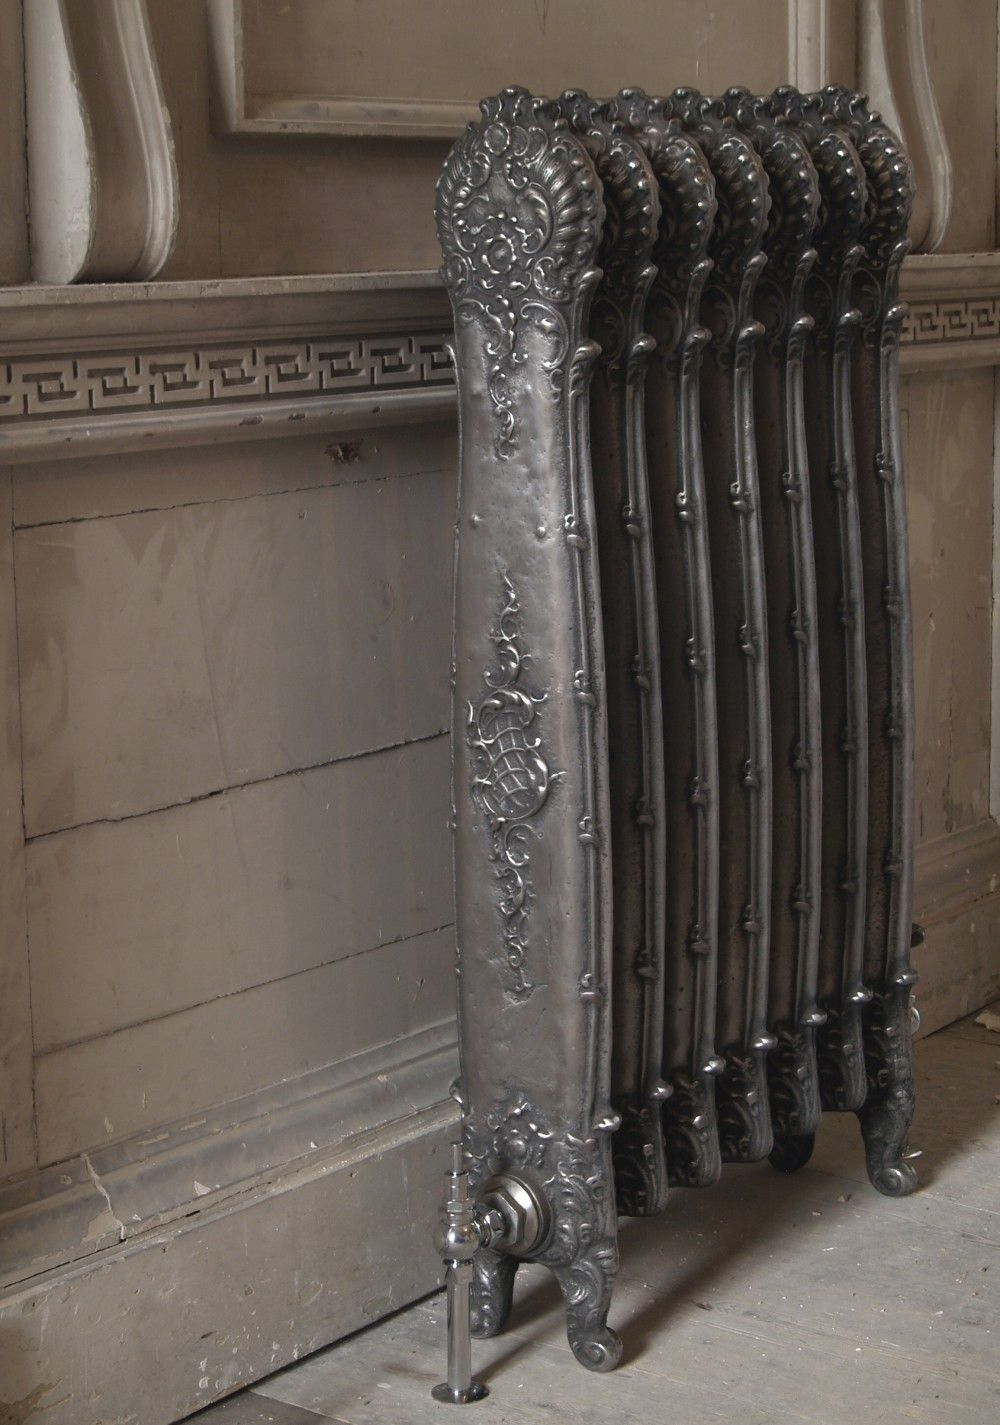 Cast iron radiators Glasgow